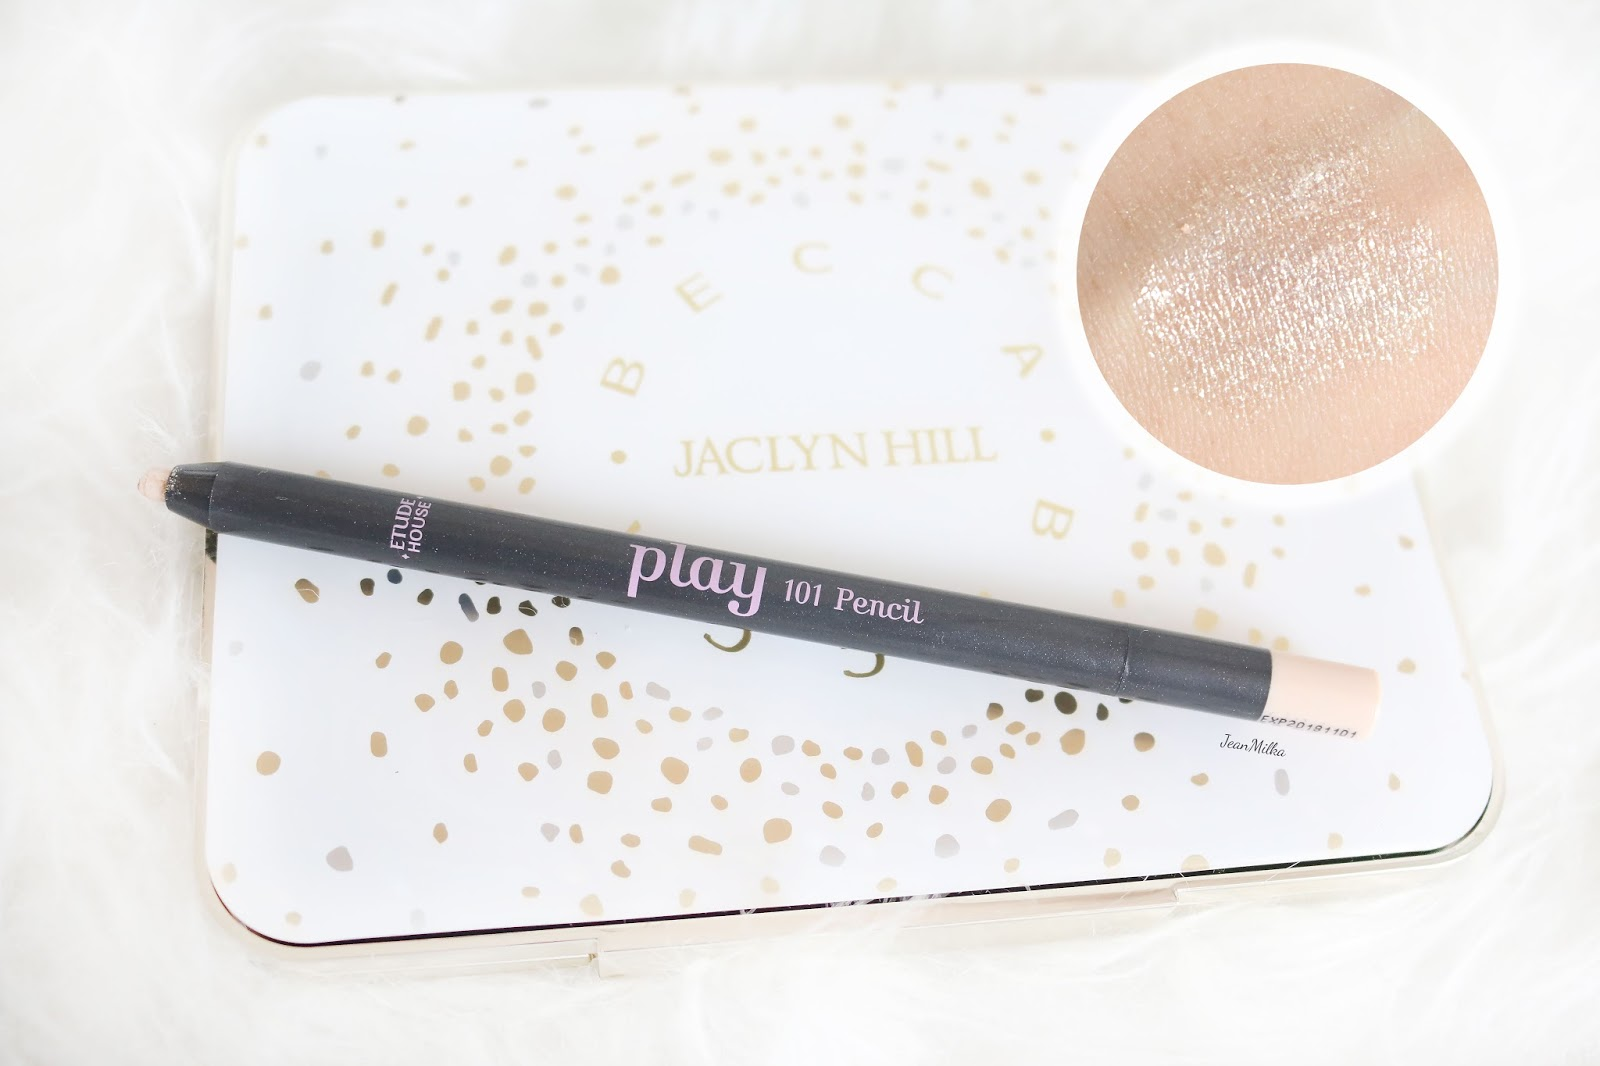 etude house, etude house play 101, etude house play 101 pencil, etude house pencil, etude house play 101 pencil, play 101 pencil, review